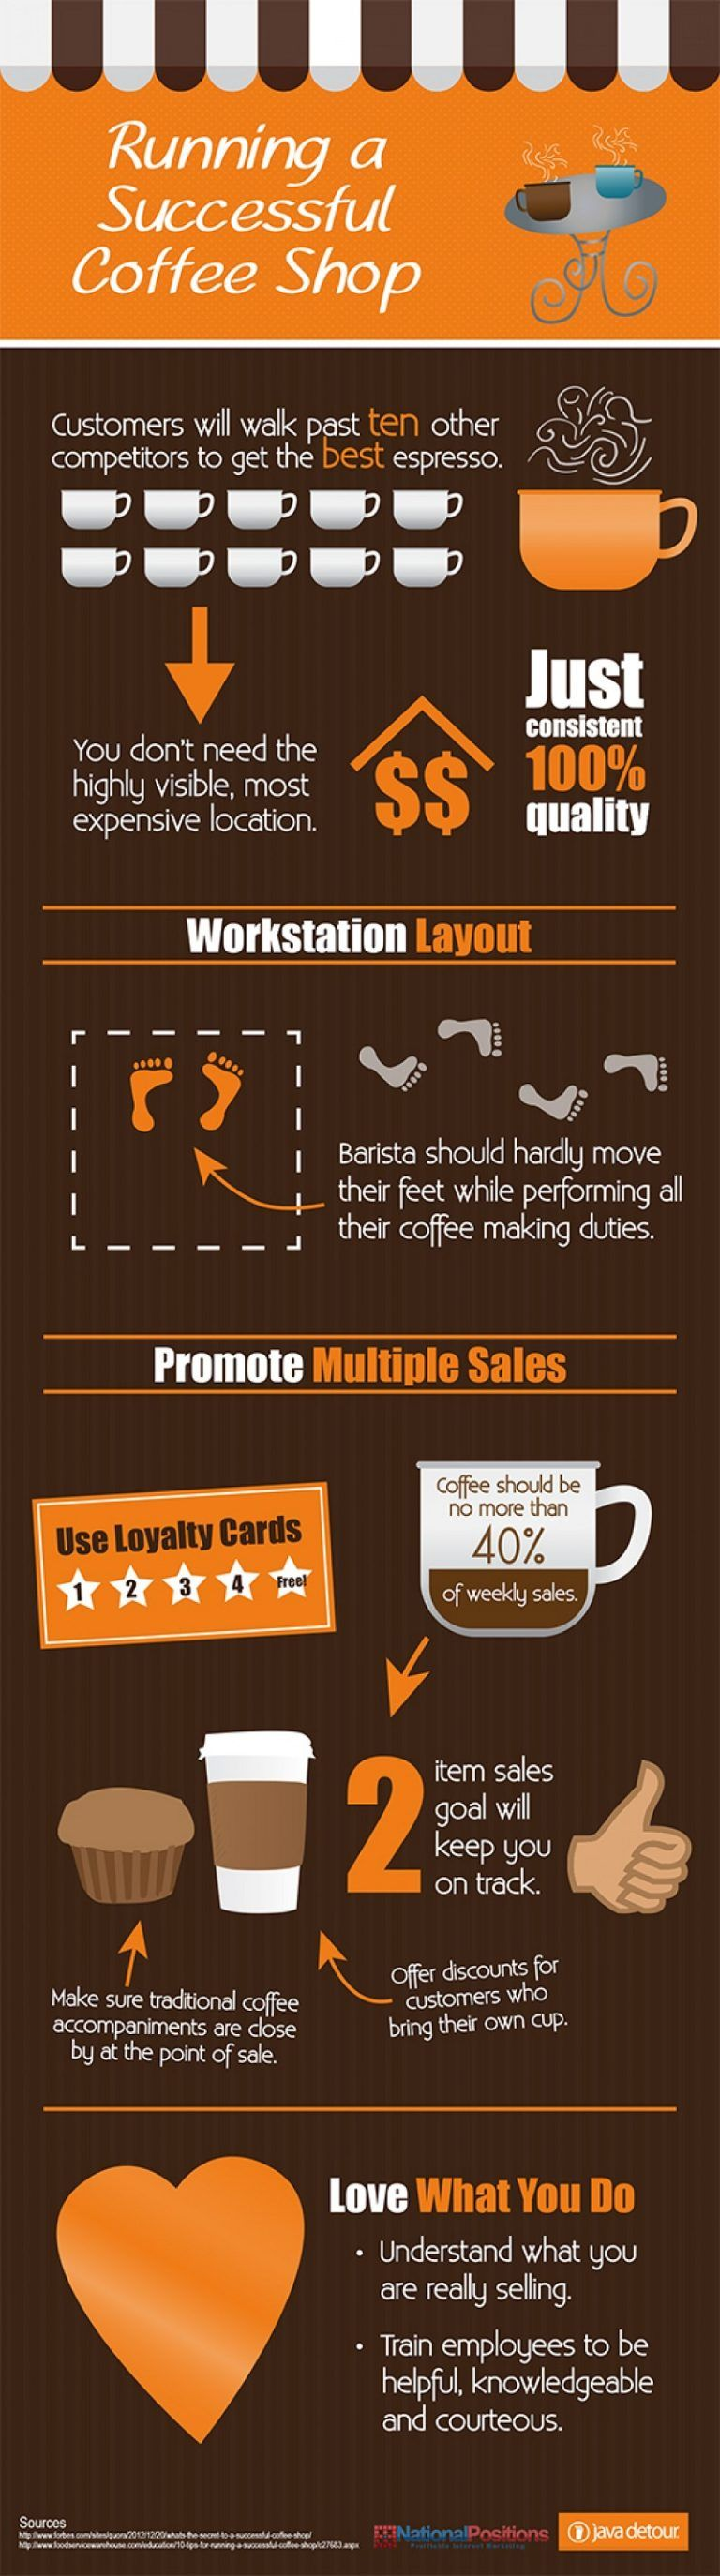 how to start a coffee shop in kenya